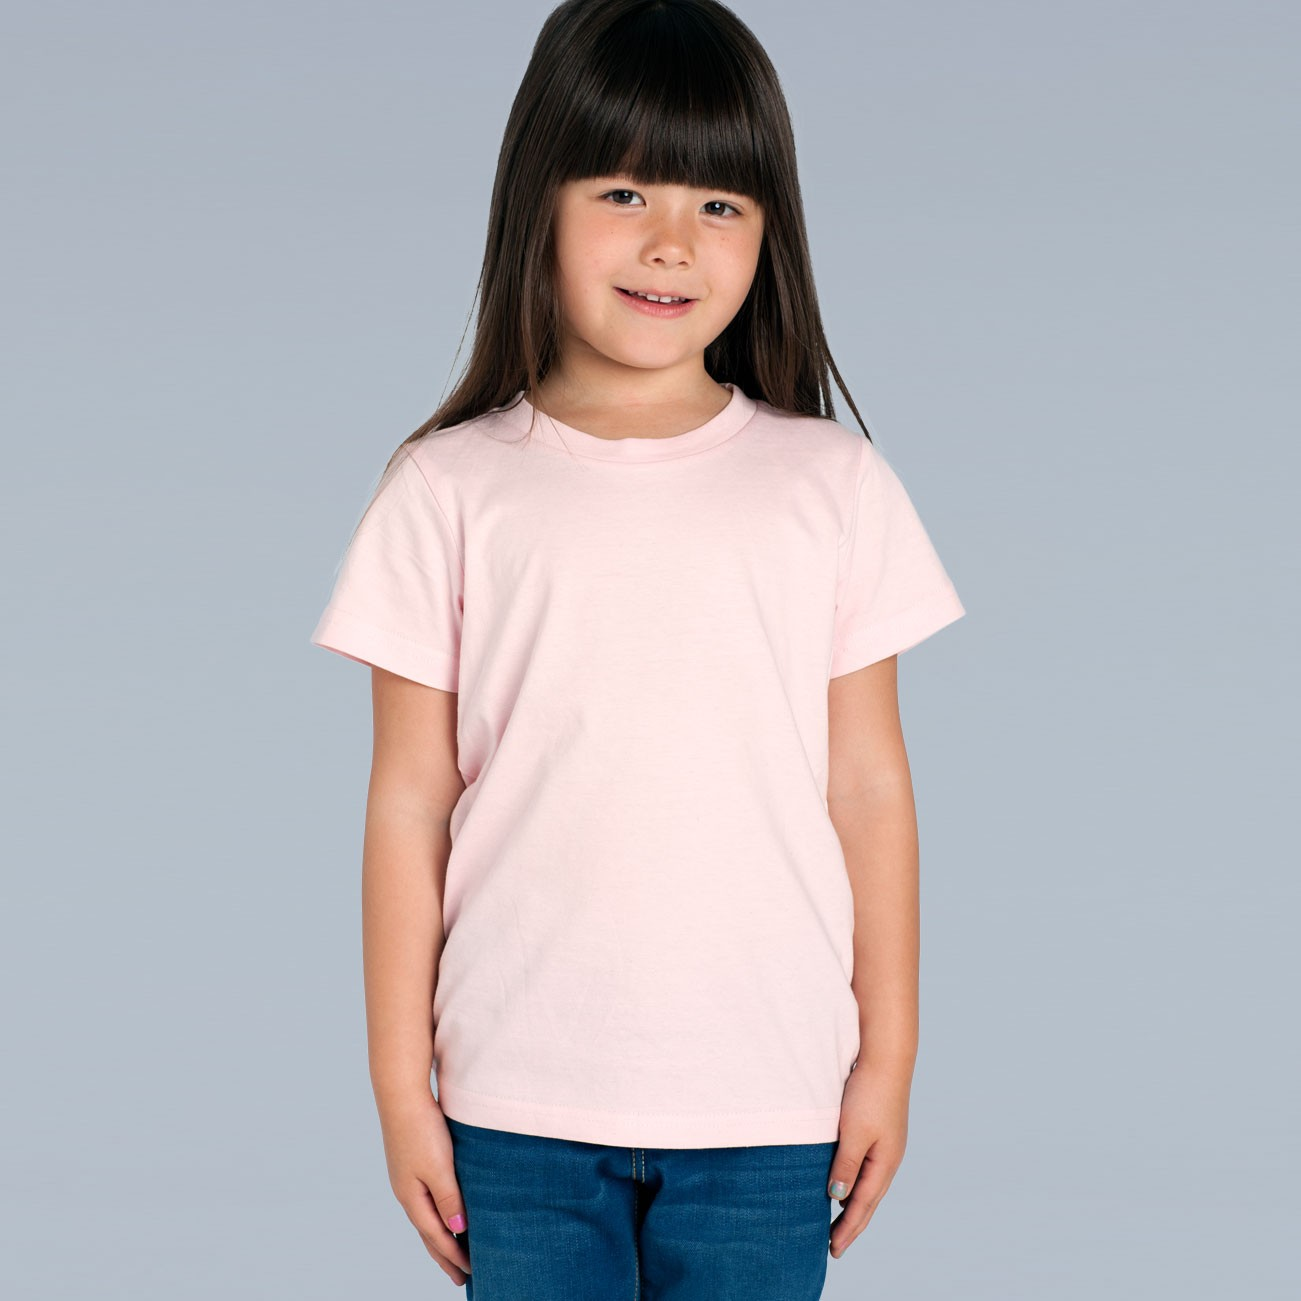 Design your own t-shirt for toddlers - More Images